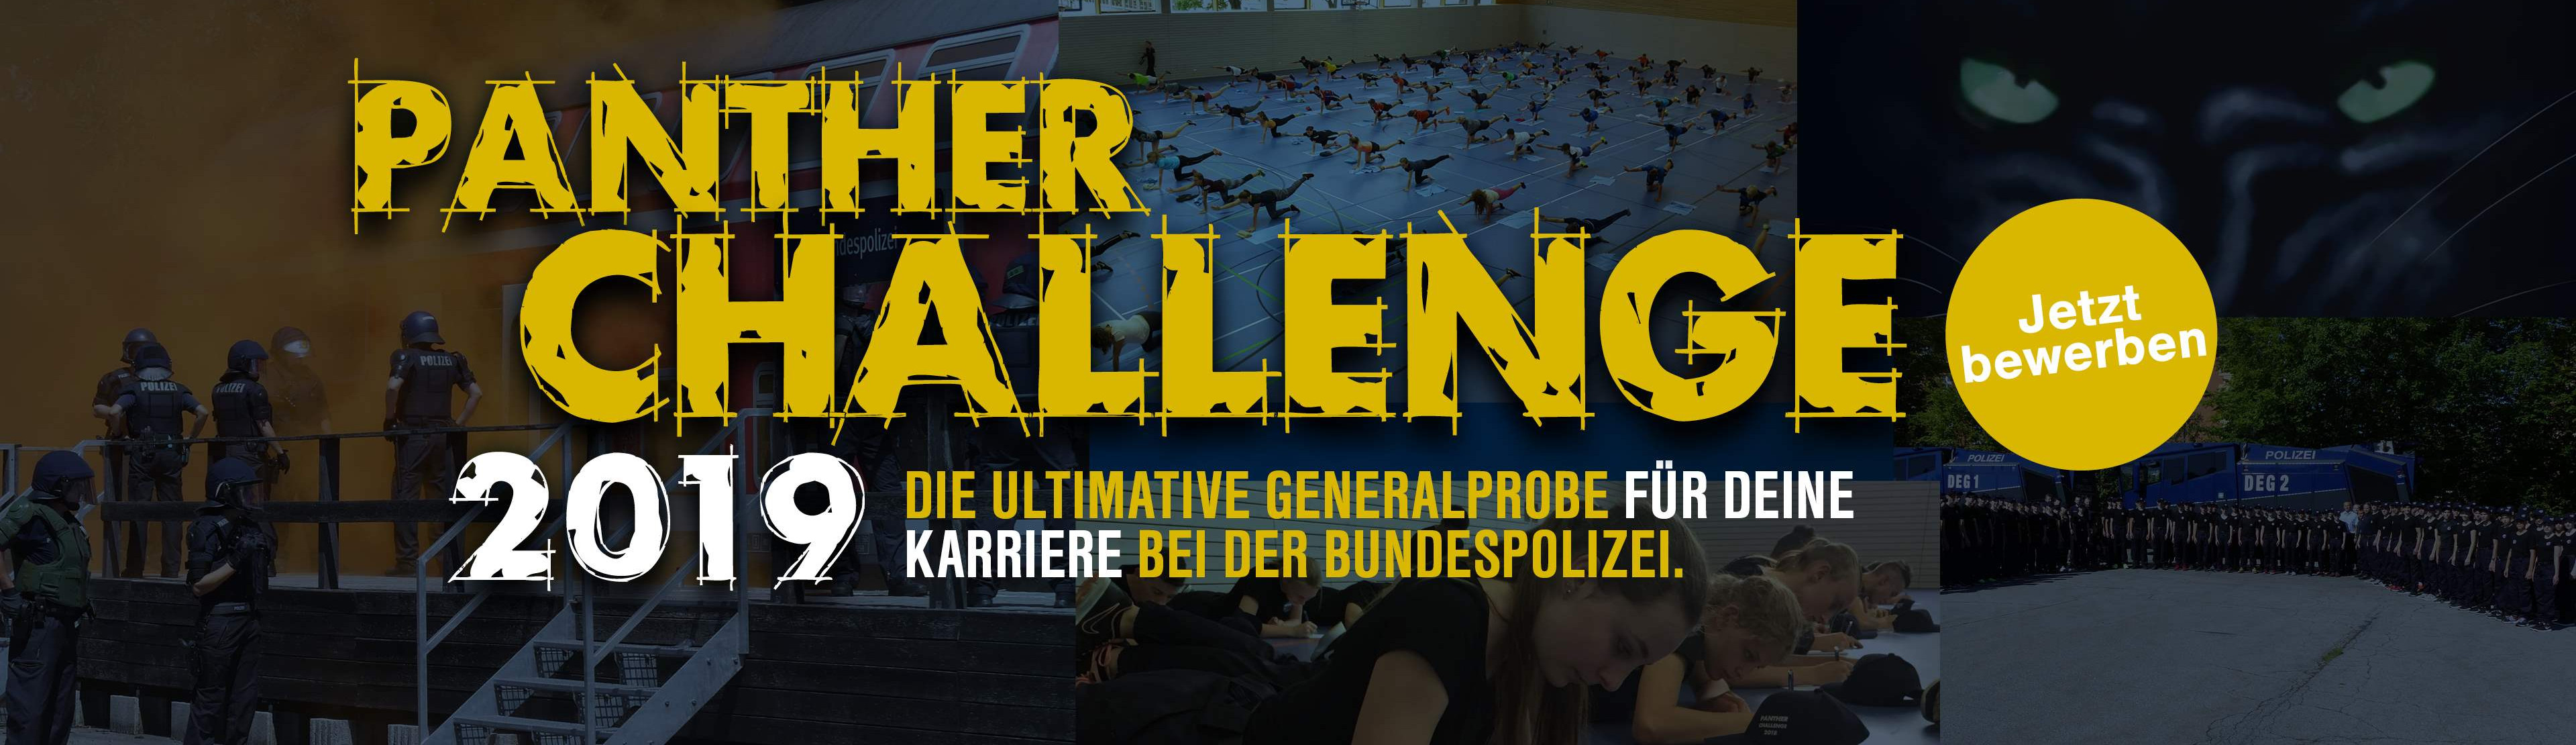 Panther Challenge 2019